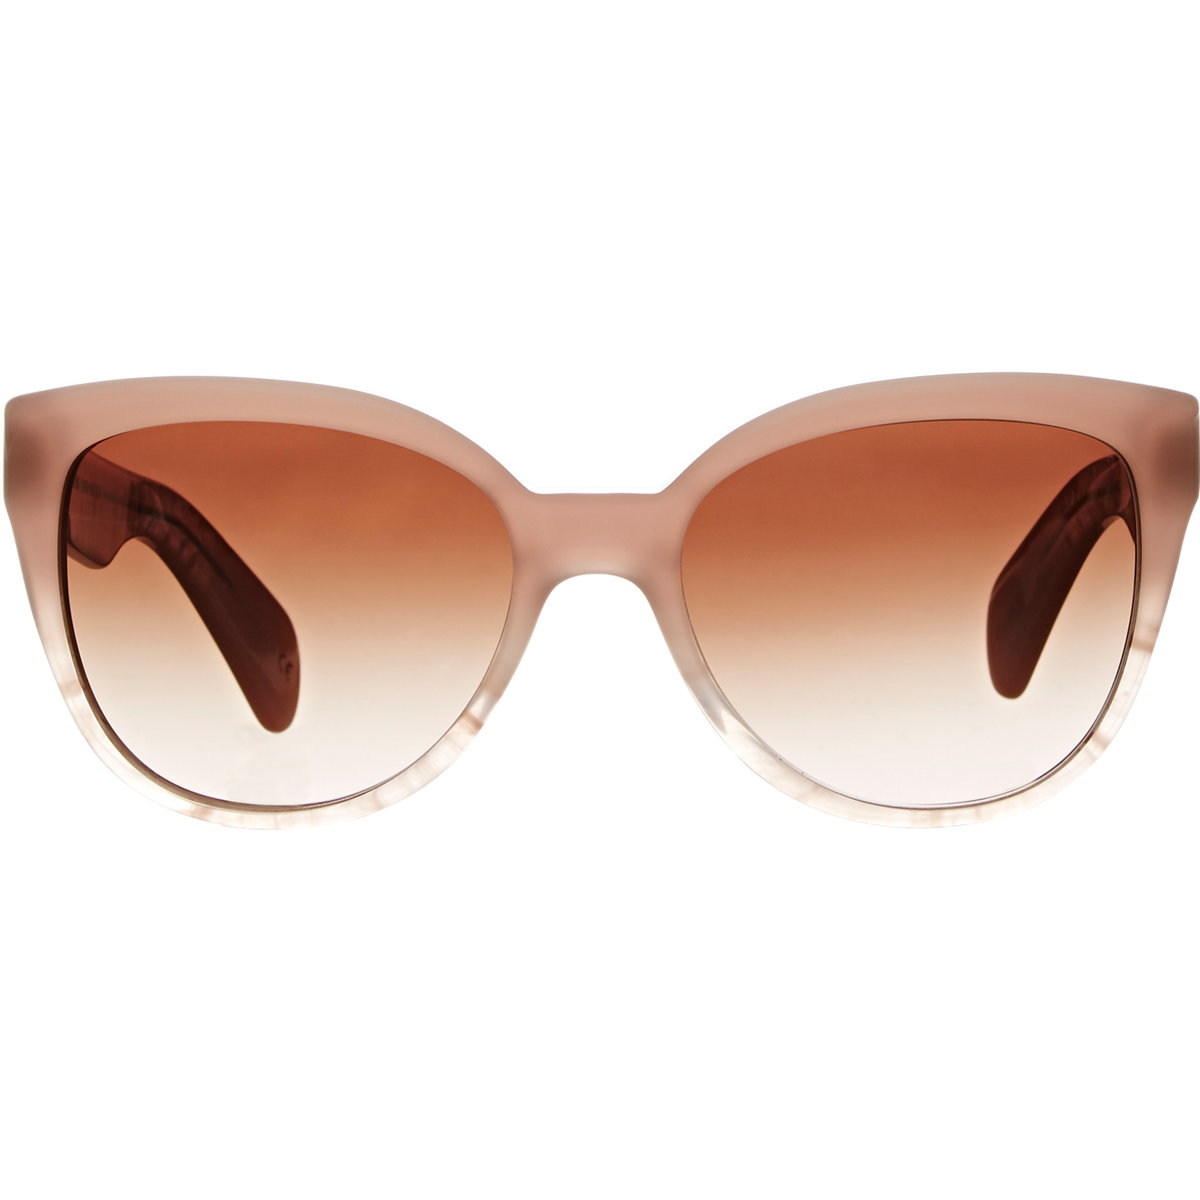 7b69b636ae3 Oliver Peoples Abrie Sunglasses in Pink - Lyst